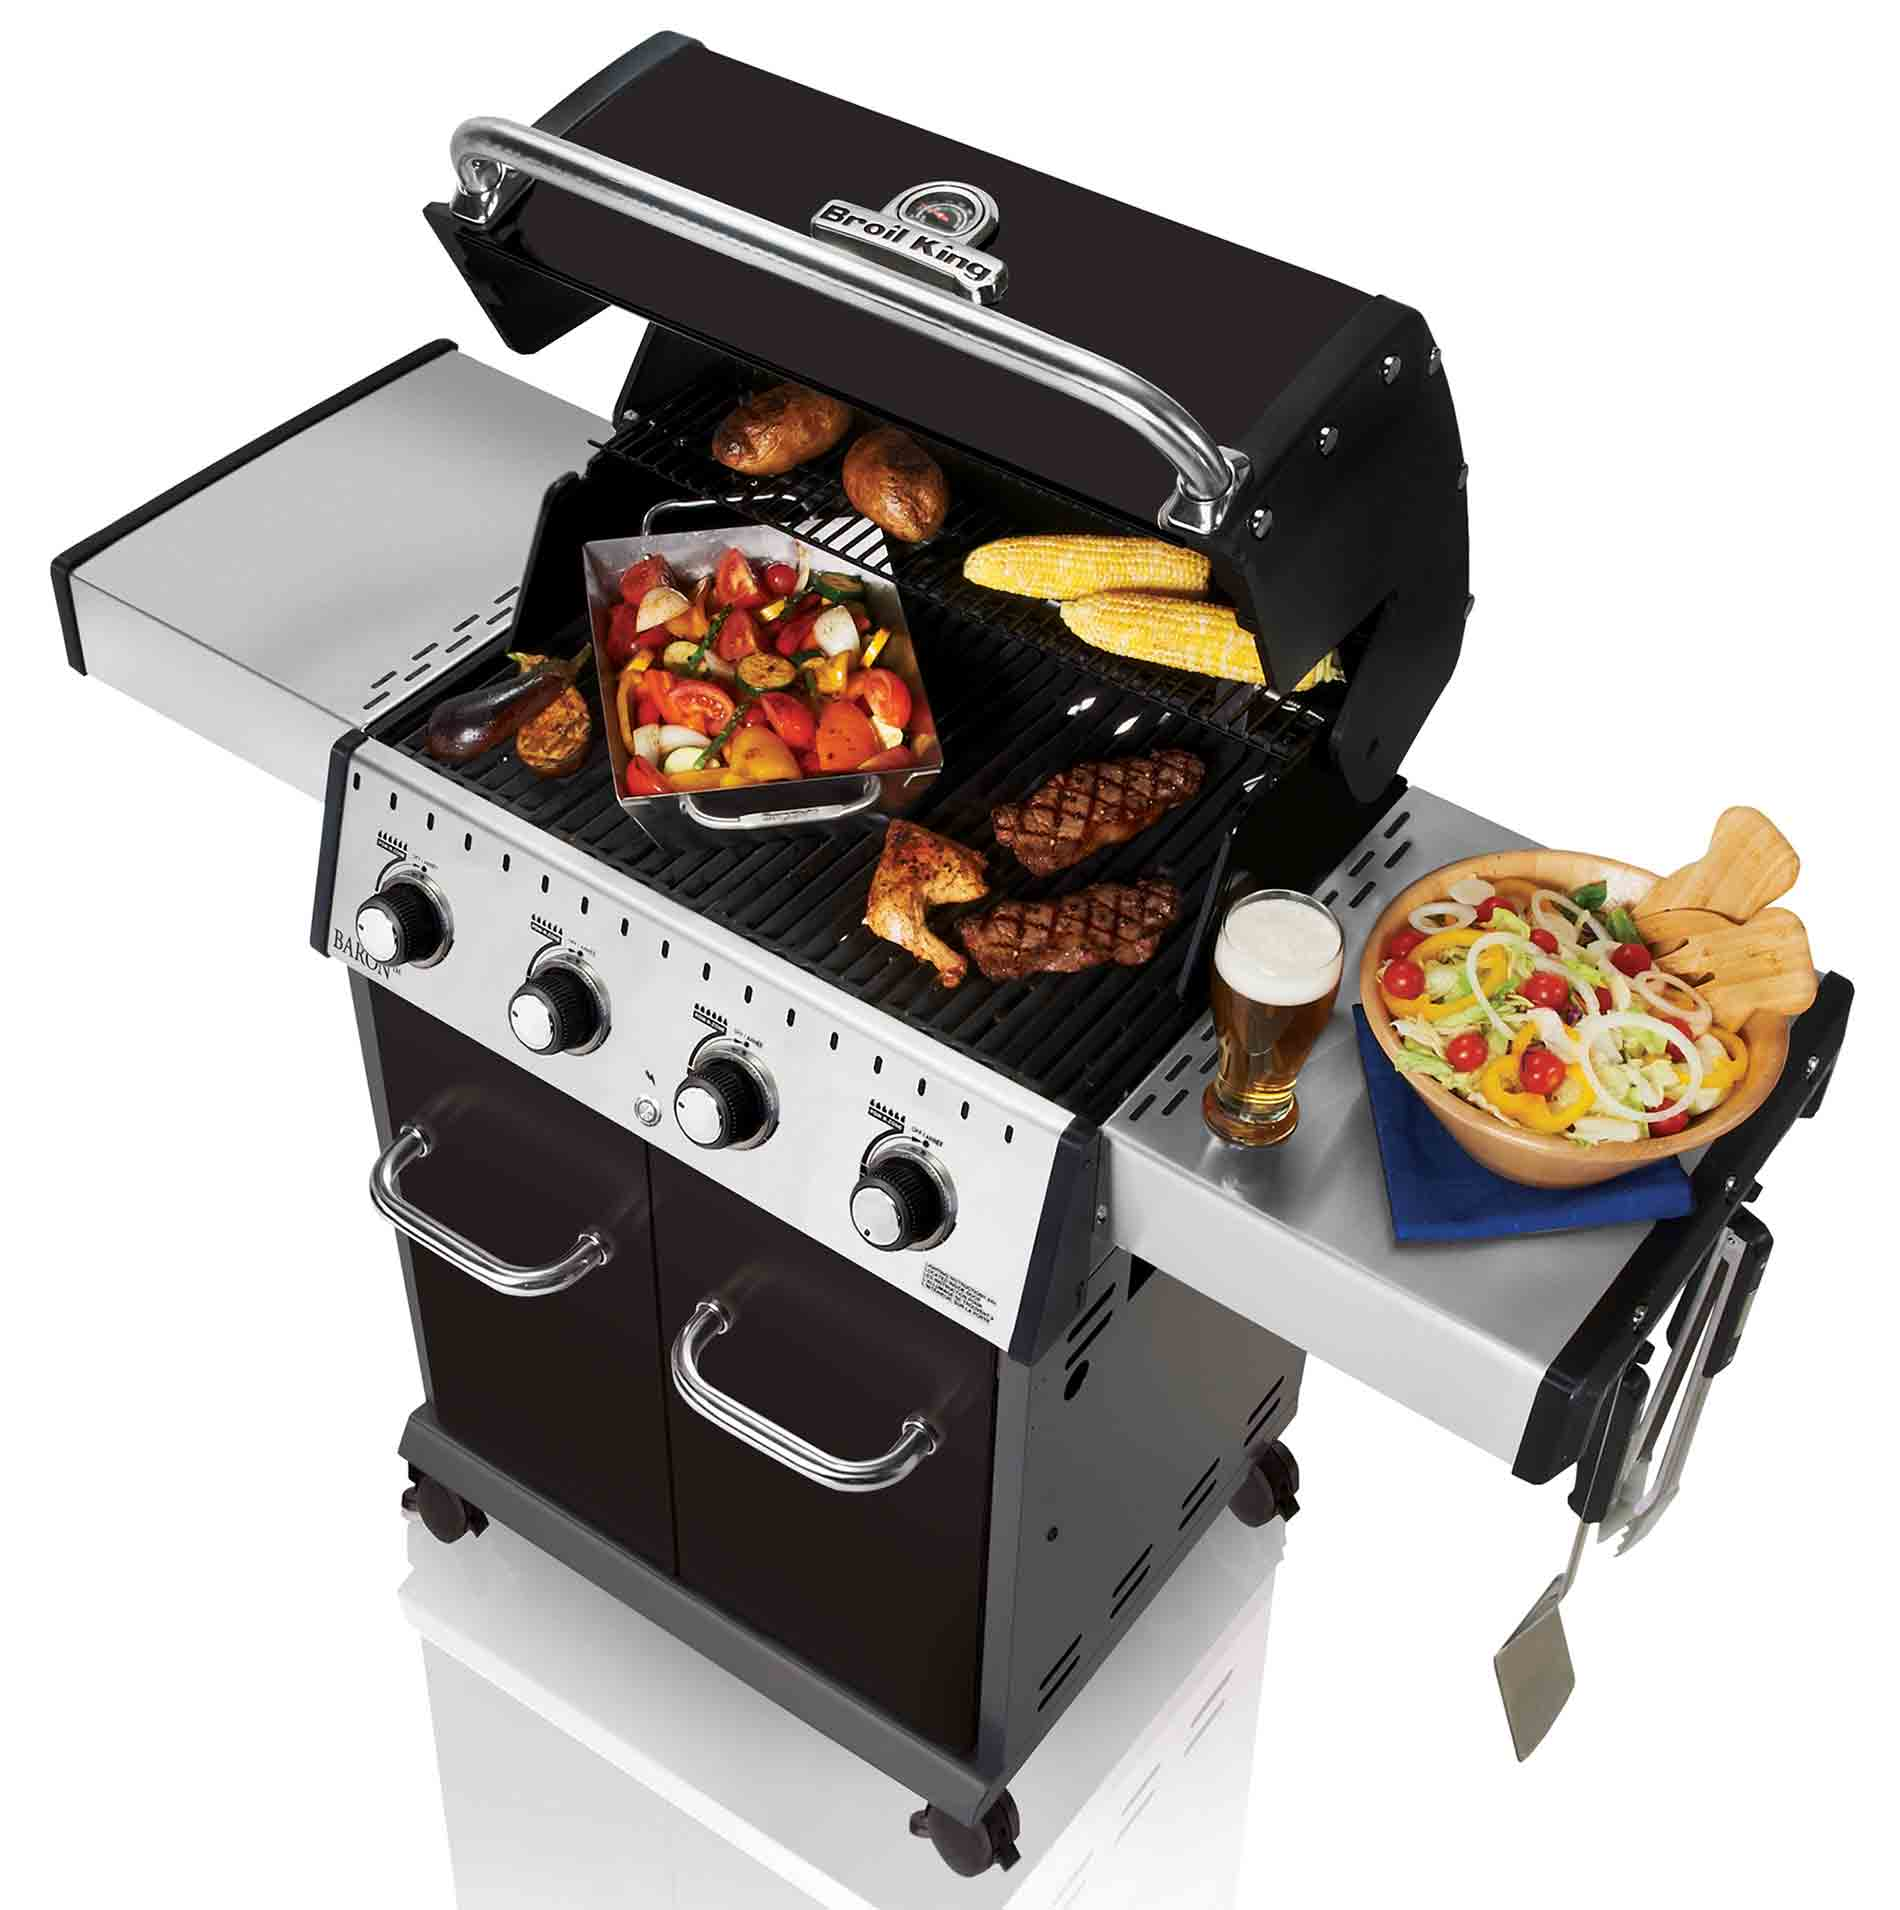 Cuisson barbecue gaz baron 420 Broil King